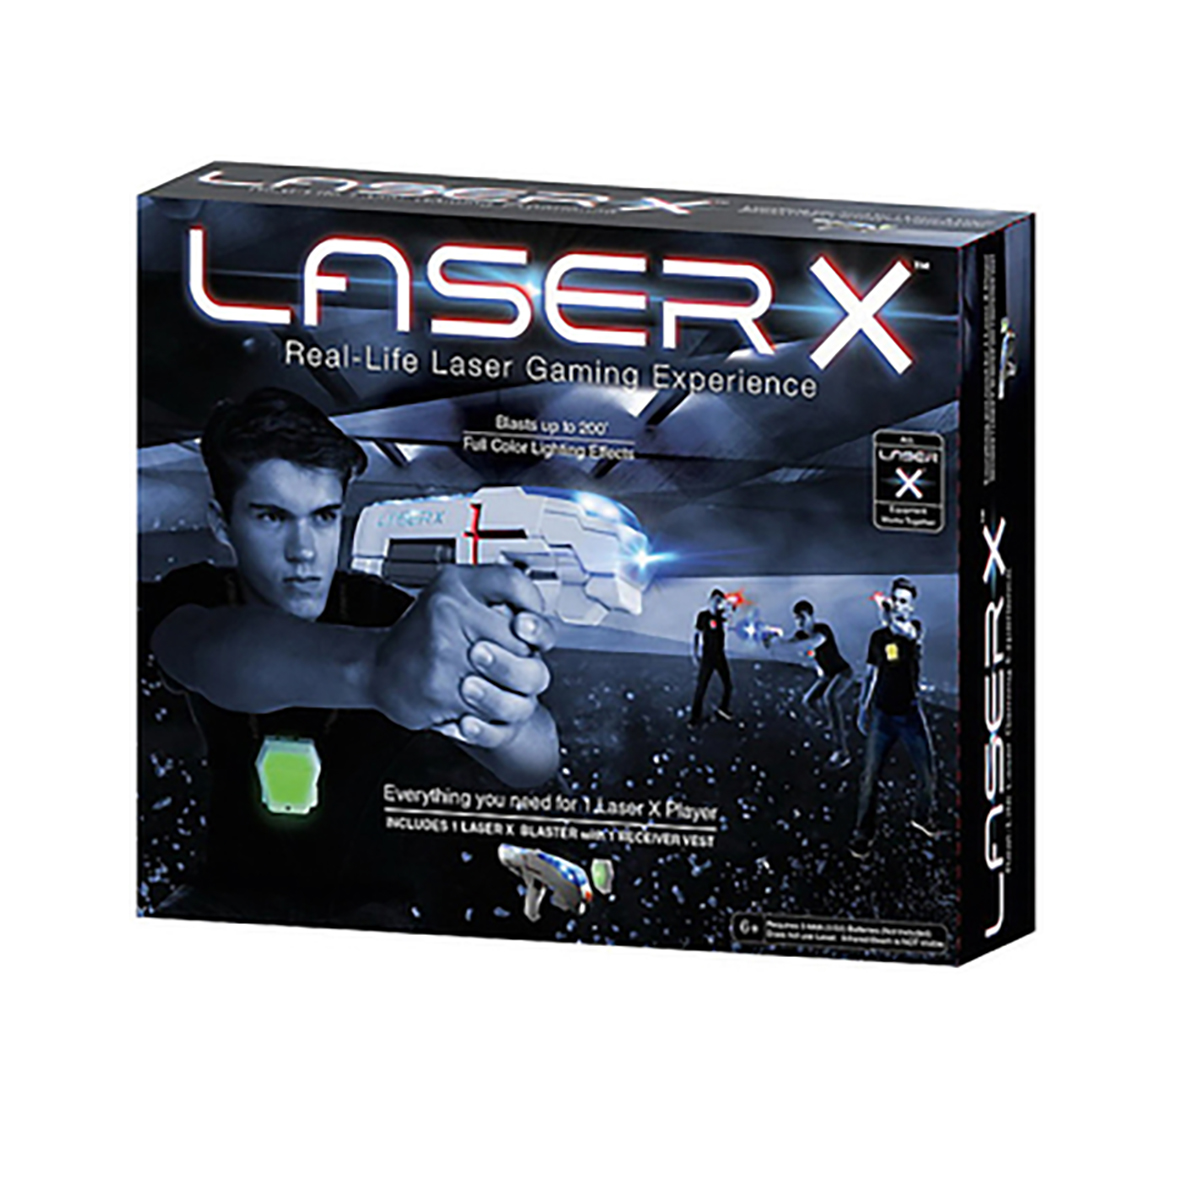 LASER X Toy Guns 8335486 for boys Arms Baby boy Kids Games Toys Outdoor Fun & Sports эксмо 978 5 699 68662 9